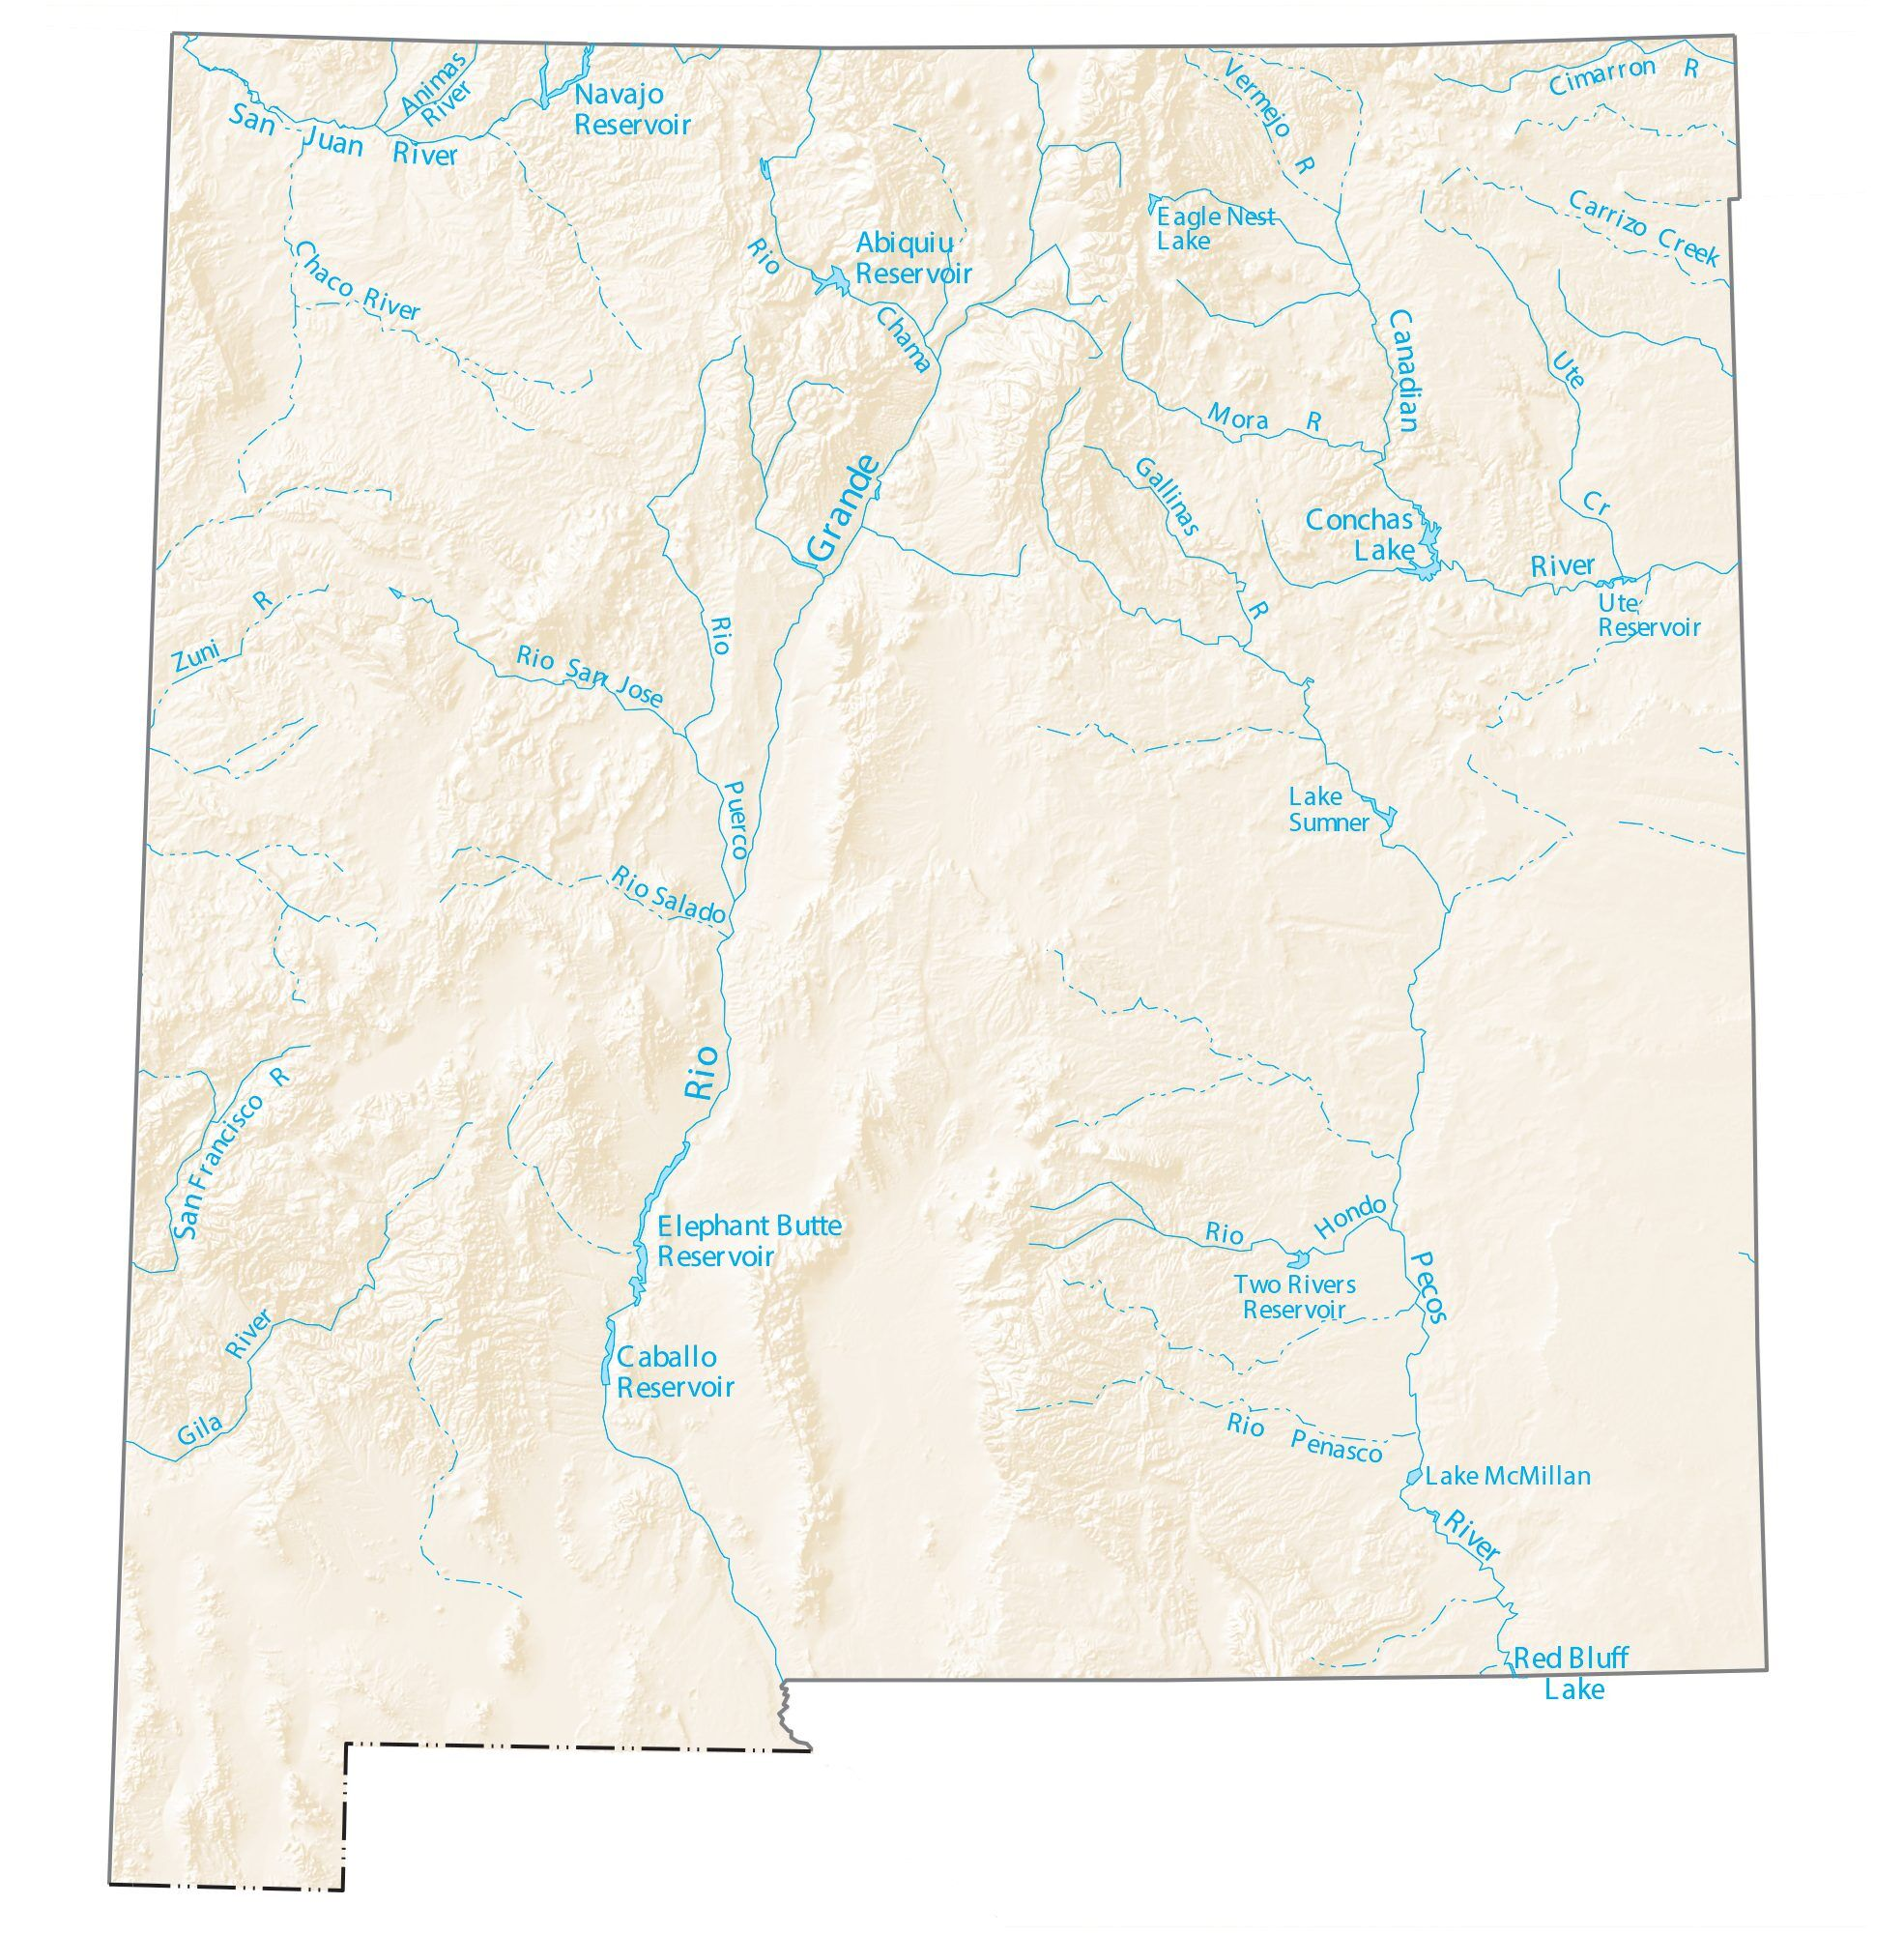 Blank Map Of Canada With Lakes And Rivers.New Mexico Lakes And Rivers Map Gis Geography